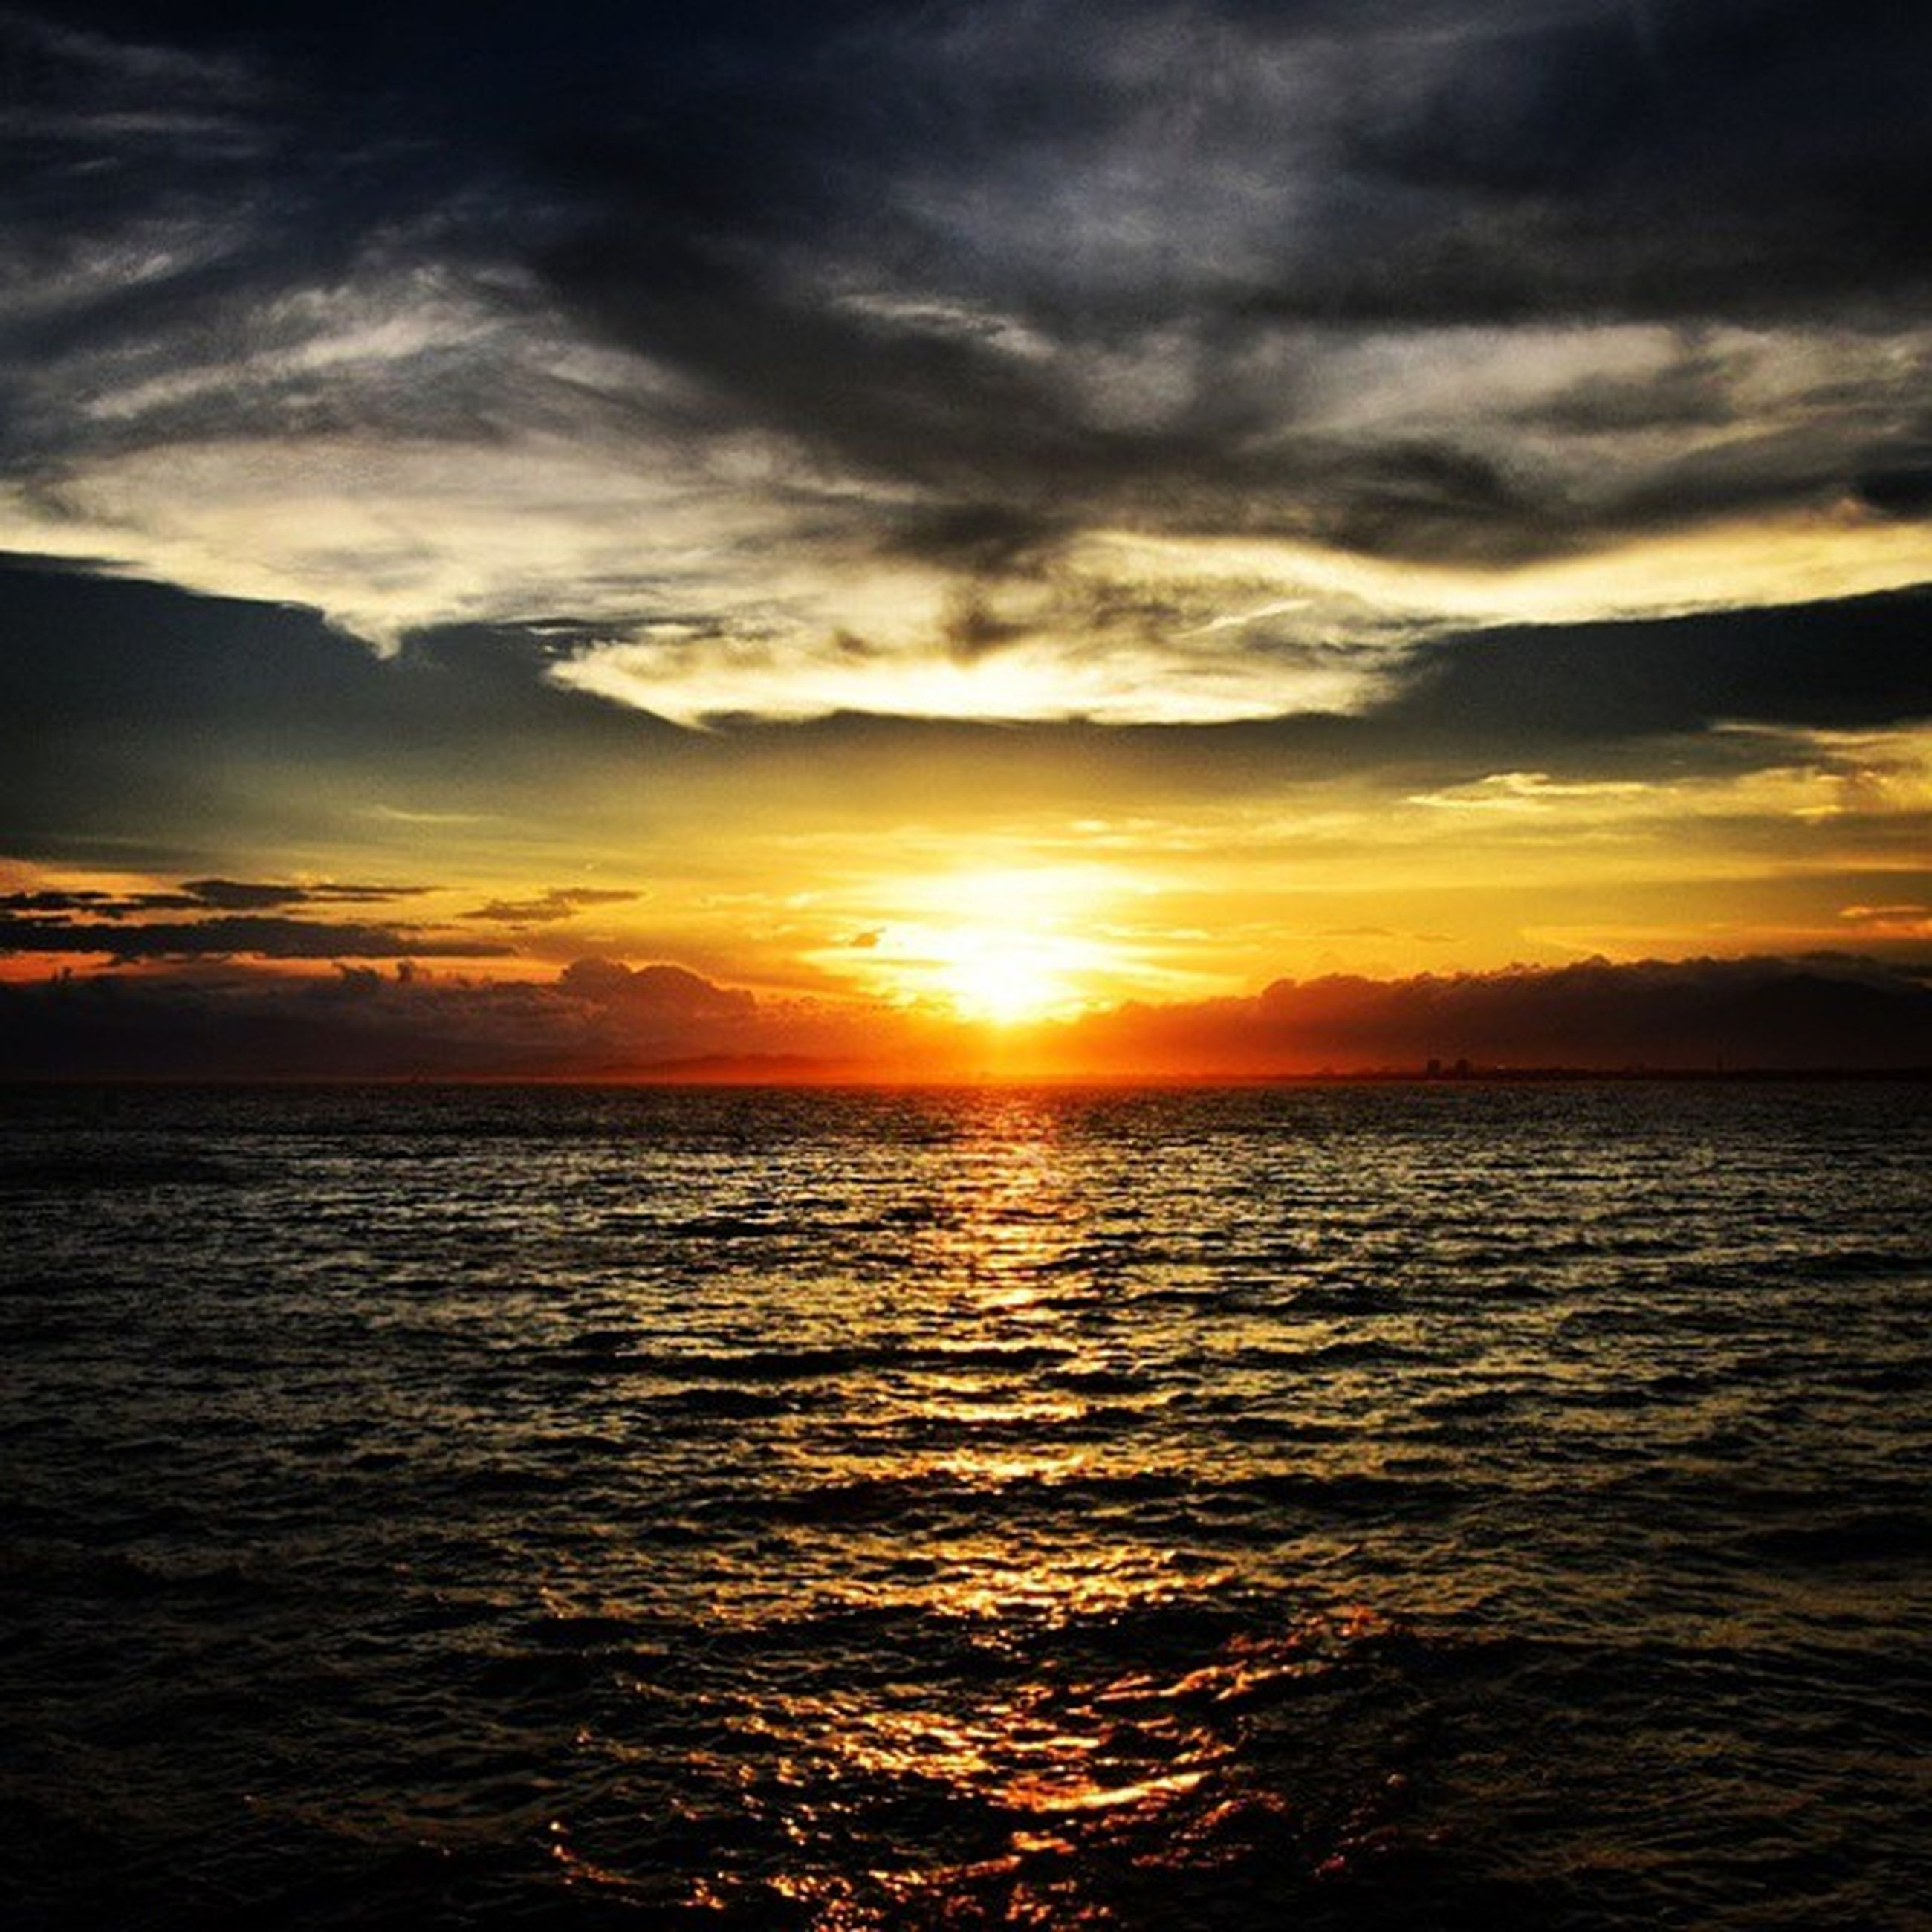 sunset, water, sea, scenics, sky, tranquil scene, beauty in nature, tranquility, orange color, cloud - sky, horizon over water, sun, idyllic, waterfront, nature, dramatic sky, rippled, silhouette, cloud, reflection